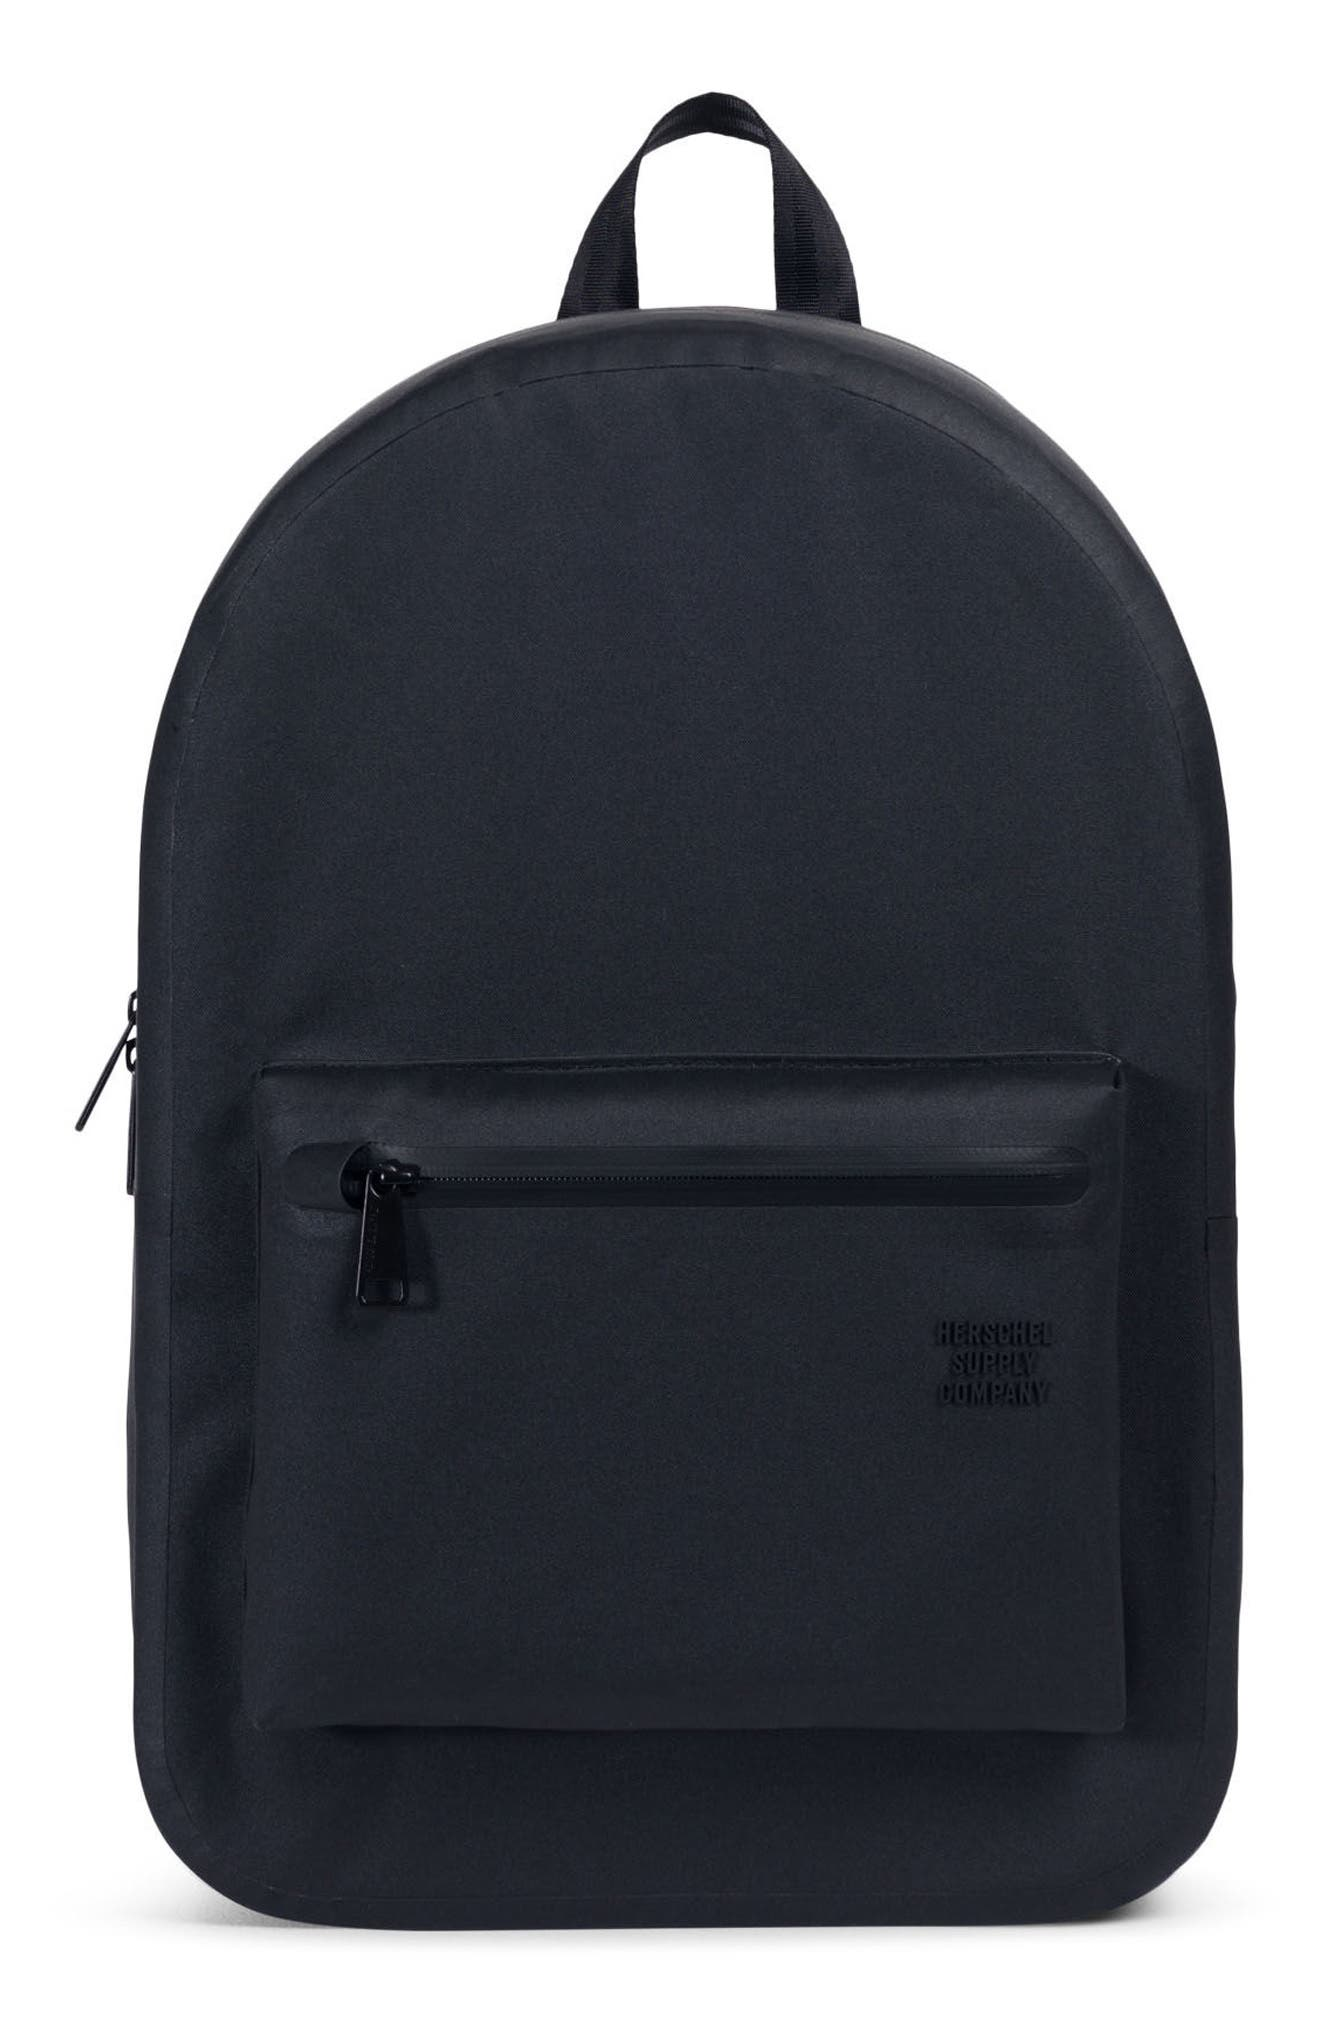 Settlement Studio Backpack,                         Main,                         color, Black